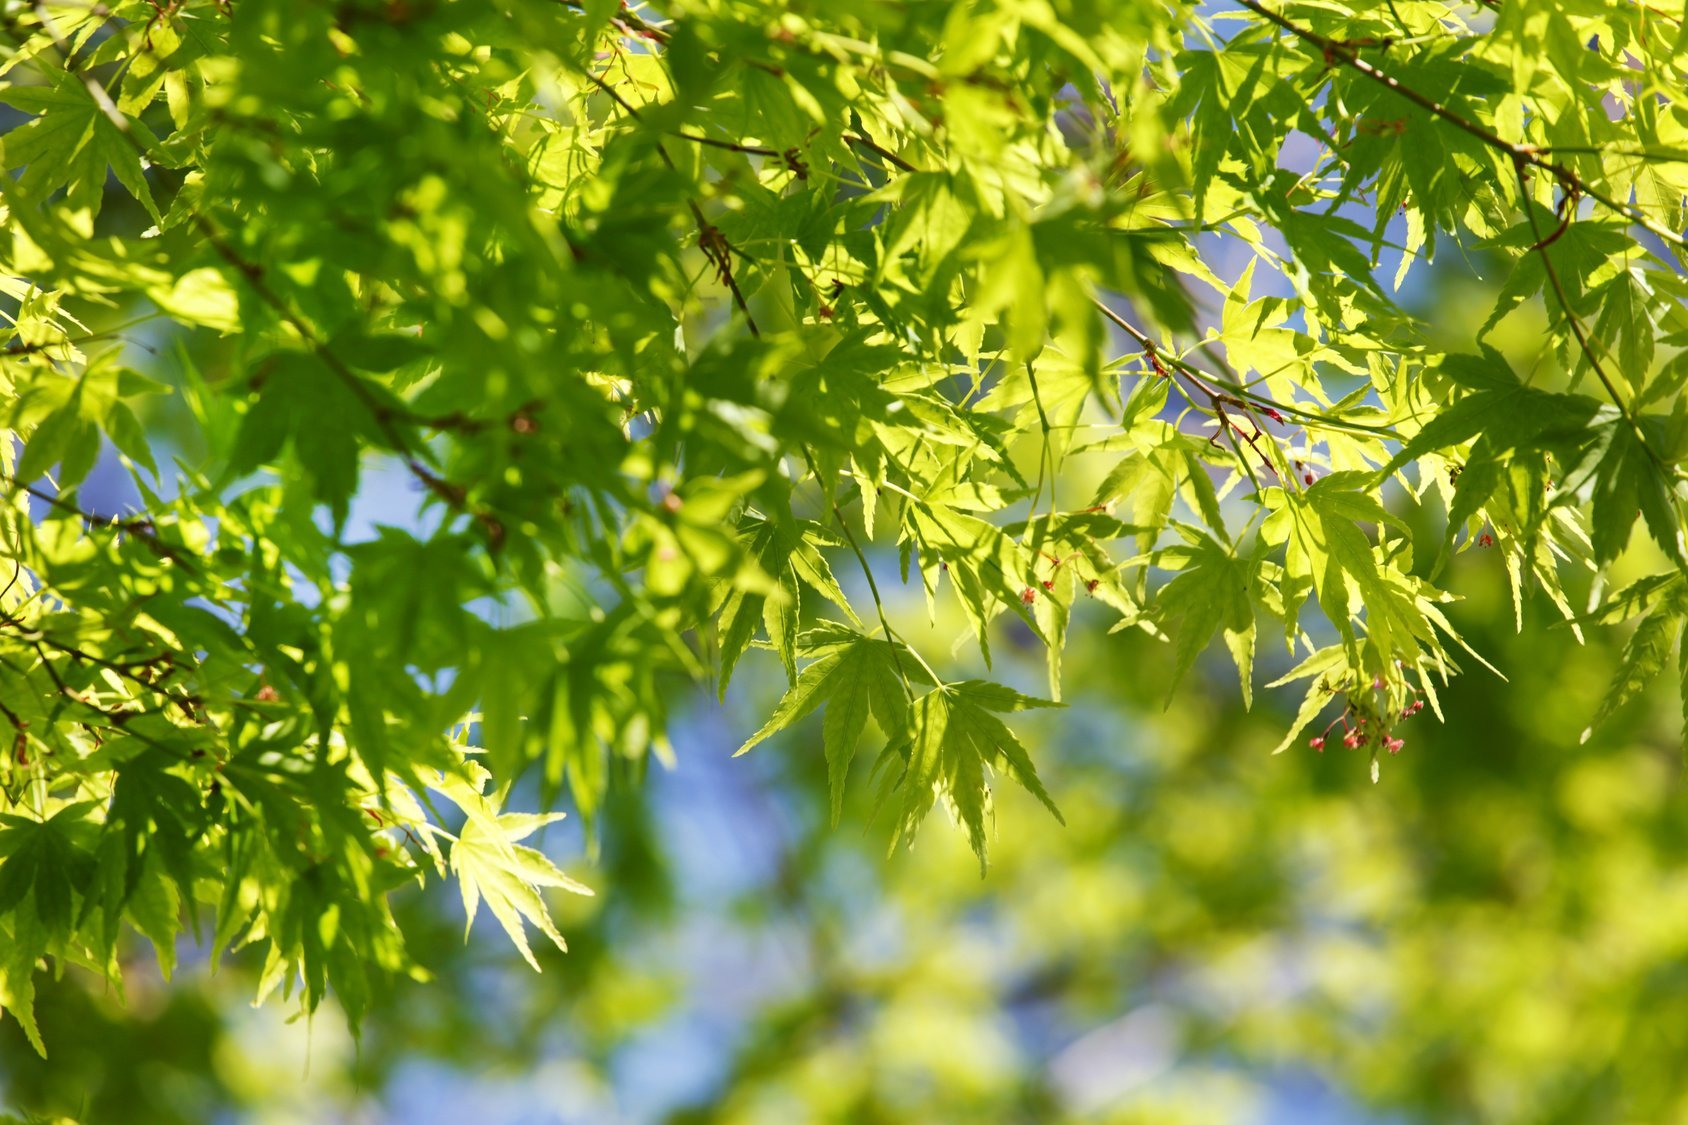 East of England Co-op Funeral Services' guide to Planning A Green Funeral